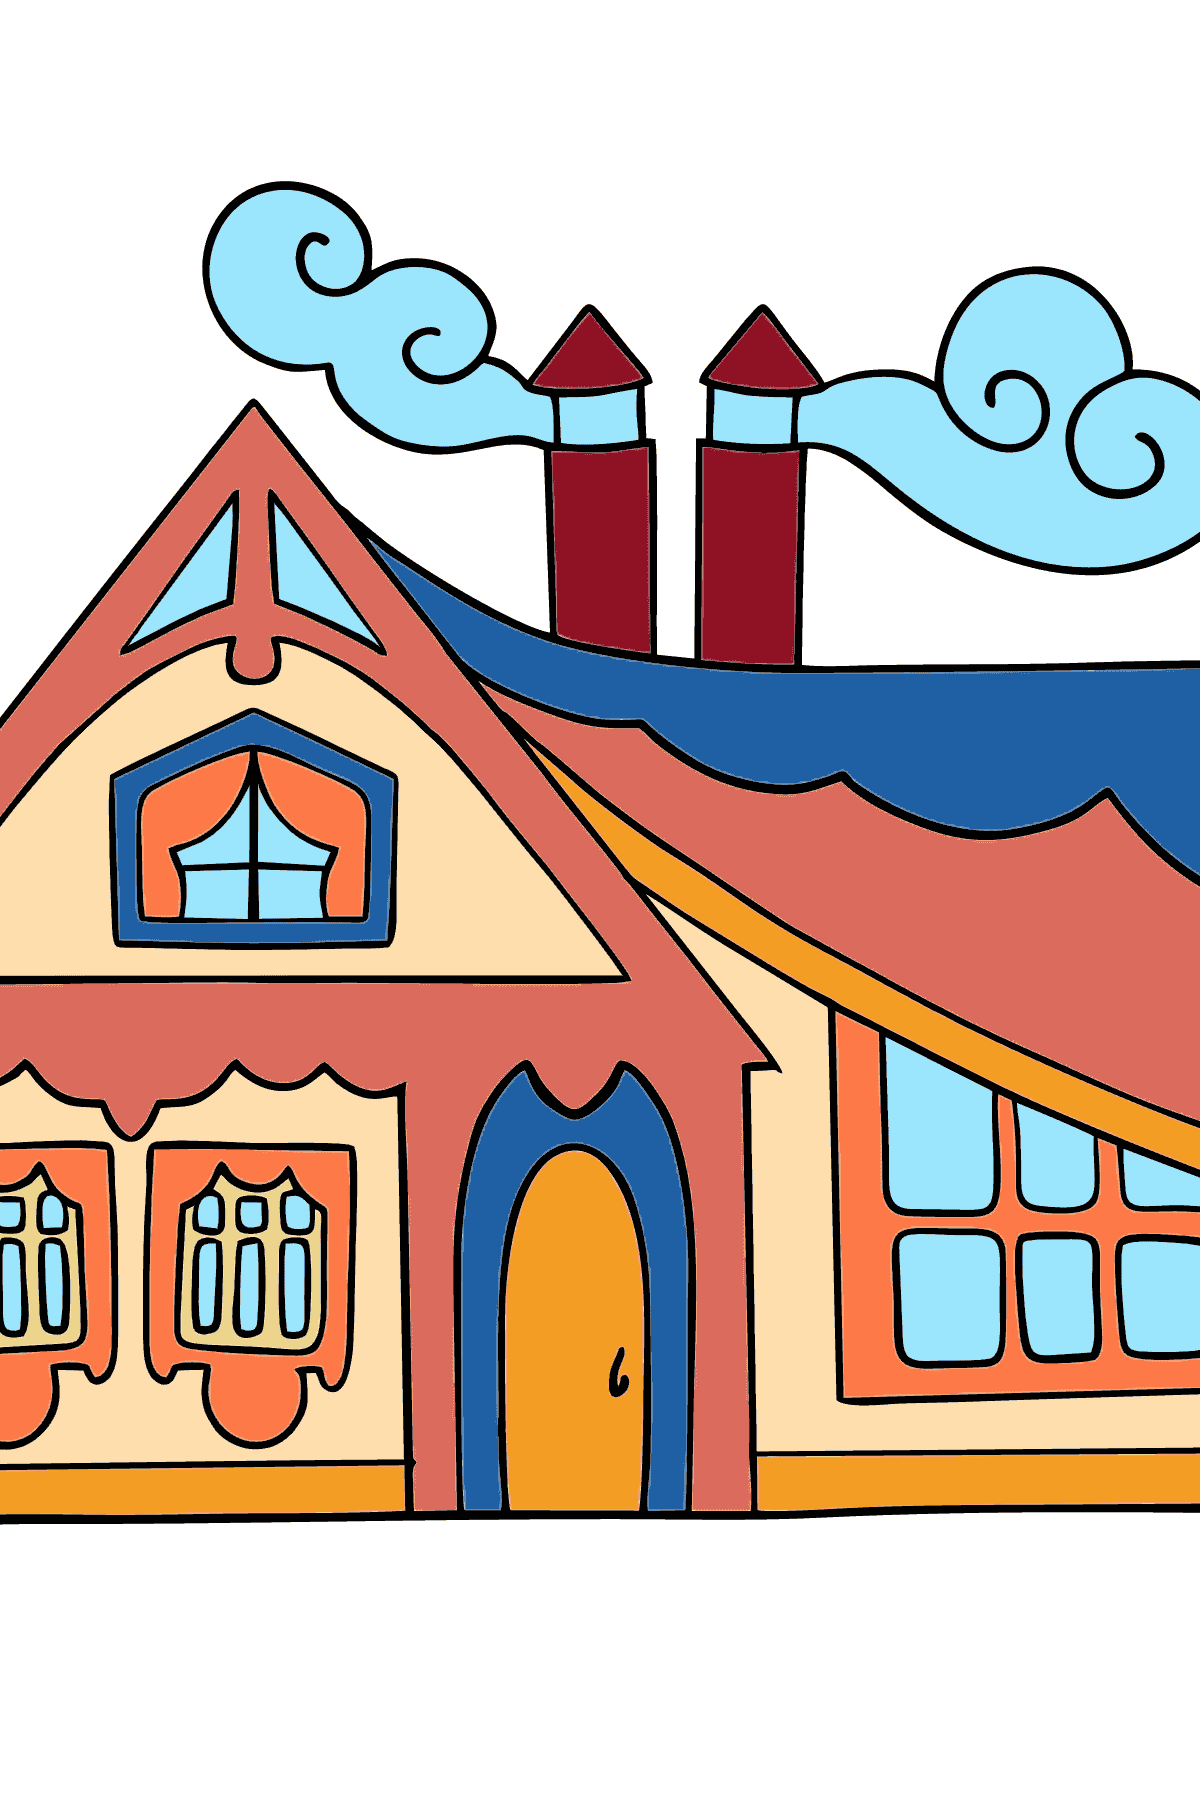 Coloring Page - A Tiny House - Coloring Pages for Children